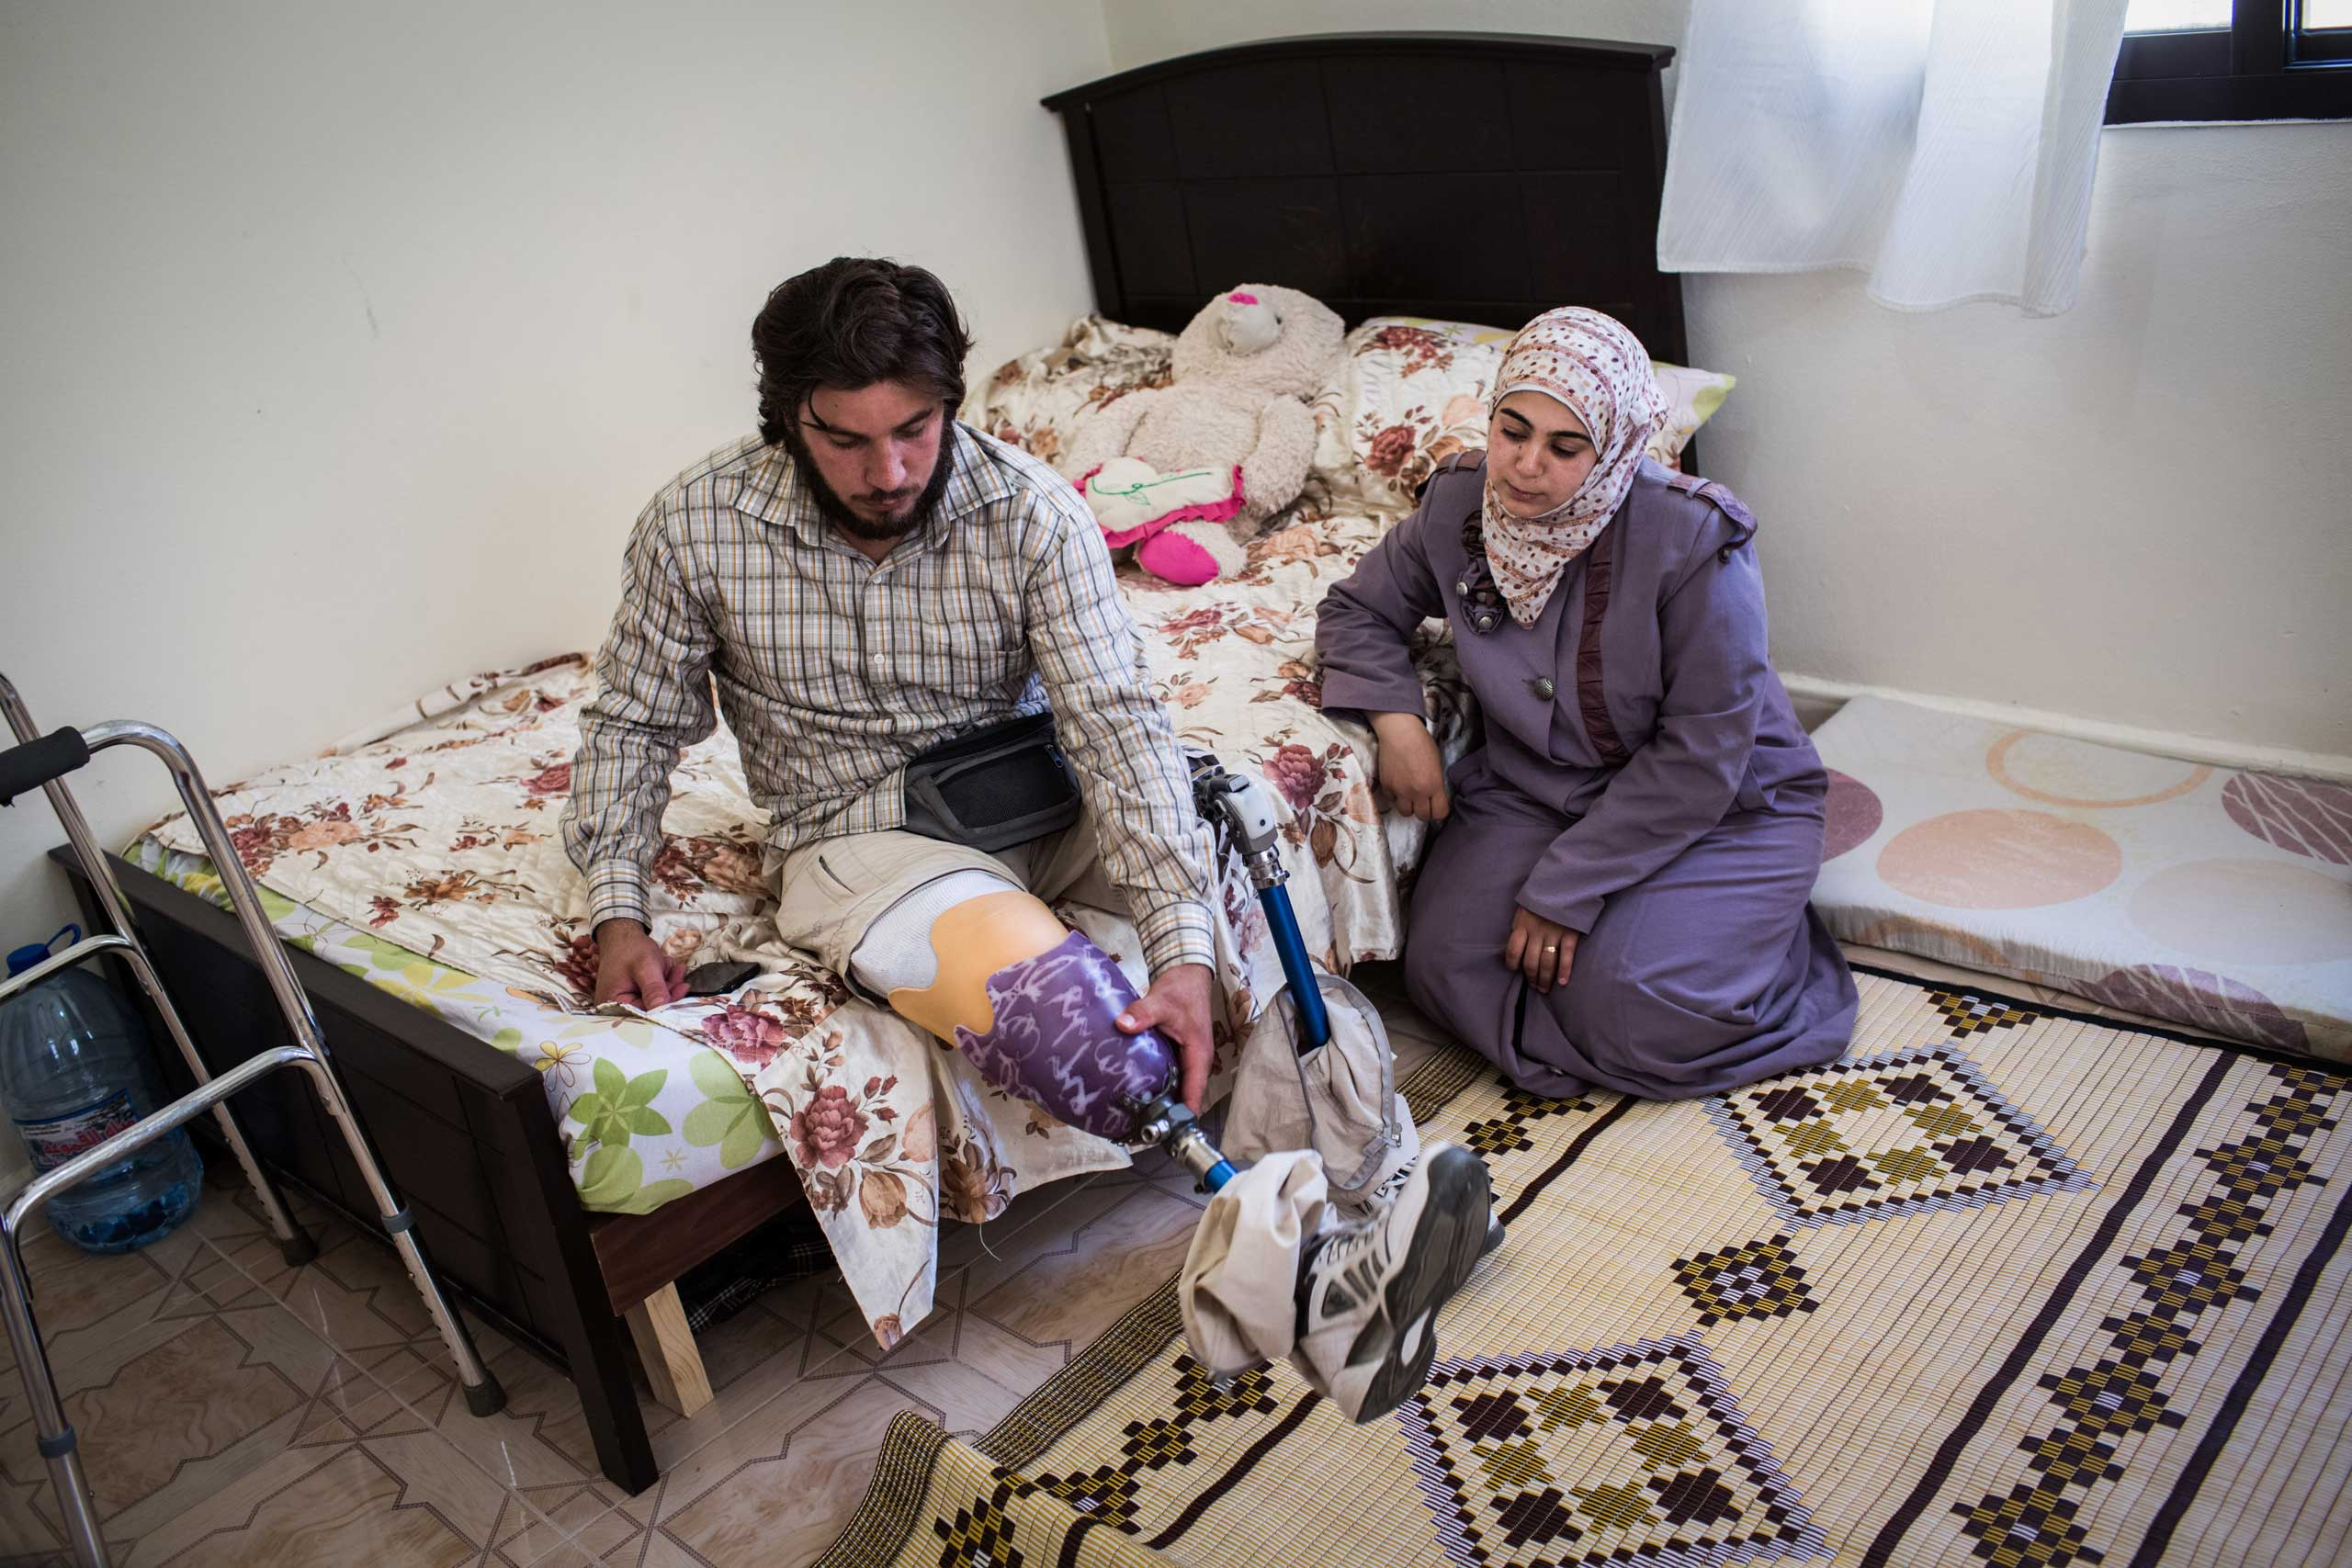 Ahmad, 29, fits his prosthetic with the help of his wife, Lazmiah, at their home in Tripoli, Lebanon, June 17, 2014. Ahmad lost both legs after a mortar attack near his home in Zabadane, Syria. He and his wife volunteer in the area.